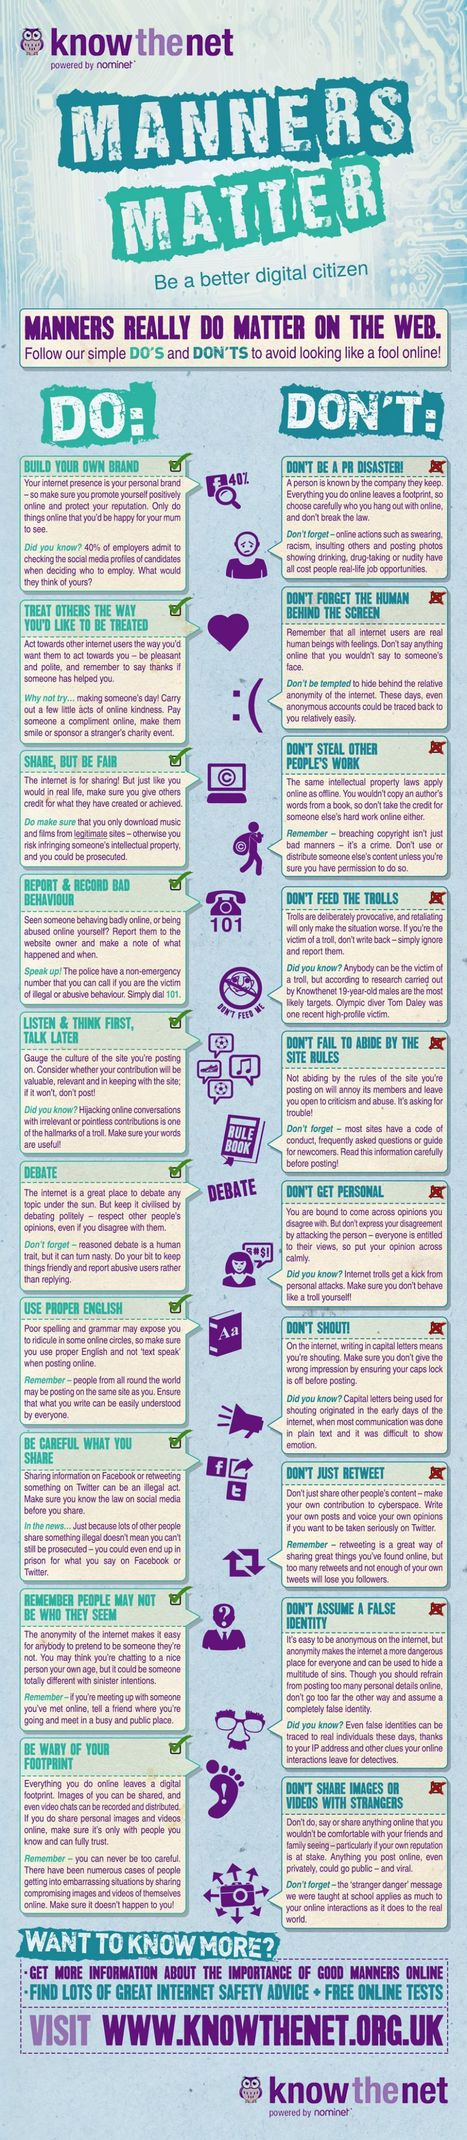 Manners Matter Netiquette [Infographic] | Digital Literacy; Cyber safety | Scoop.it